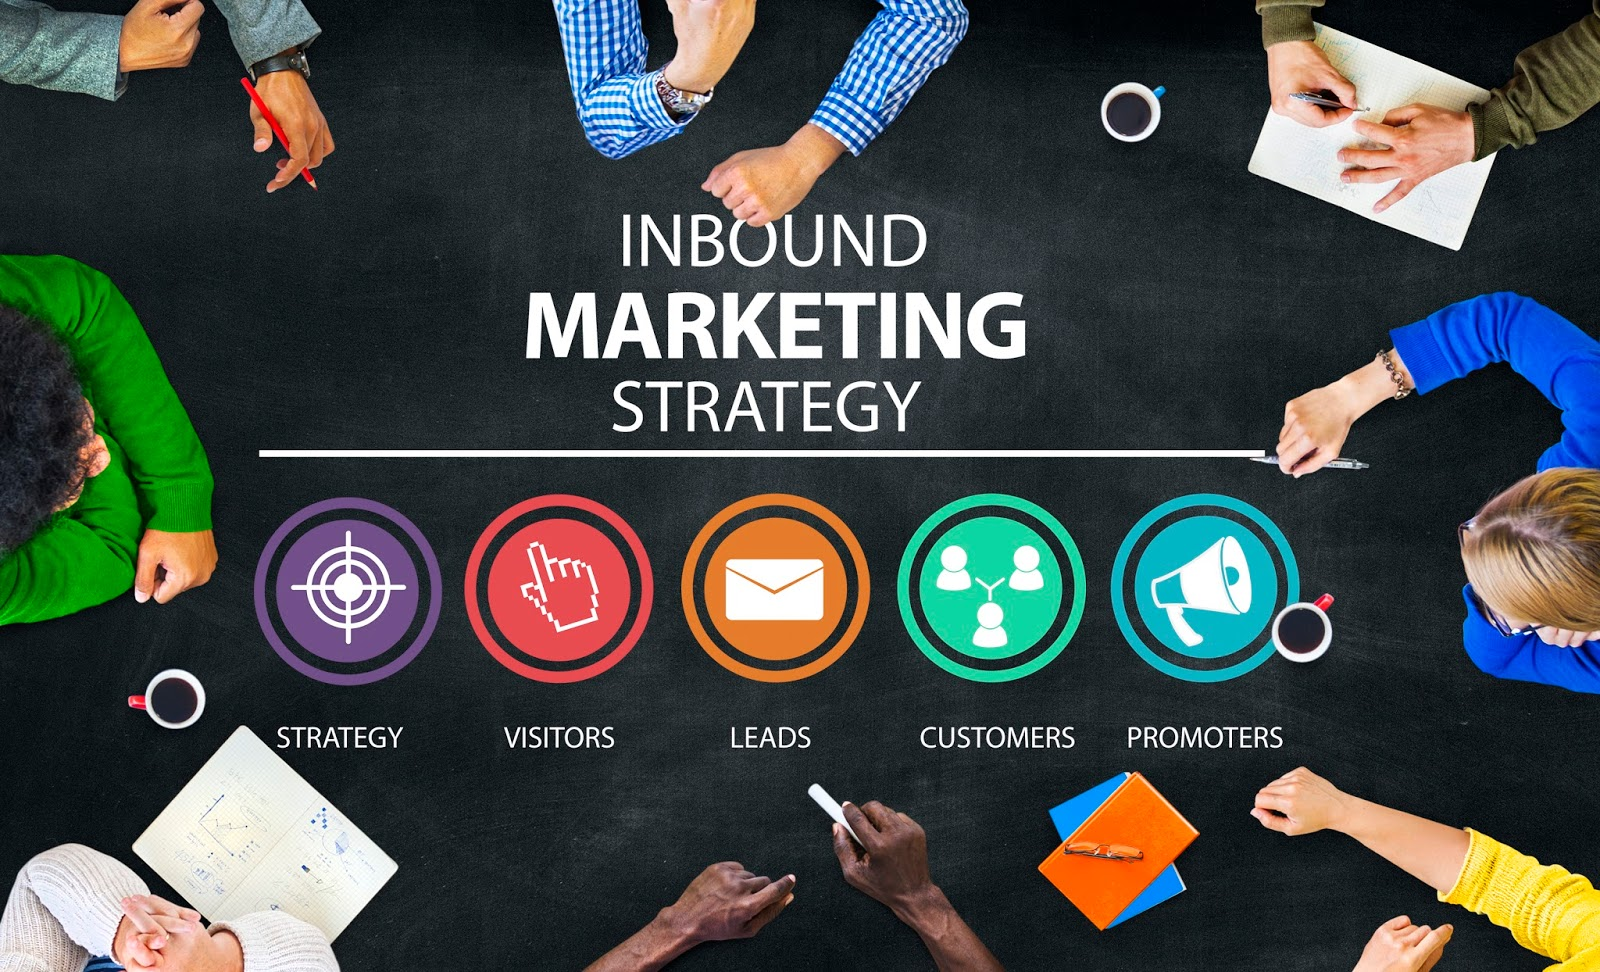 Como aplicar el Inbound de Marketing